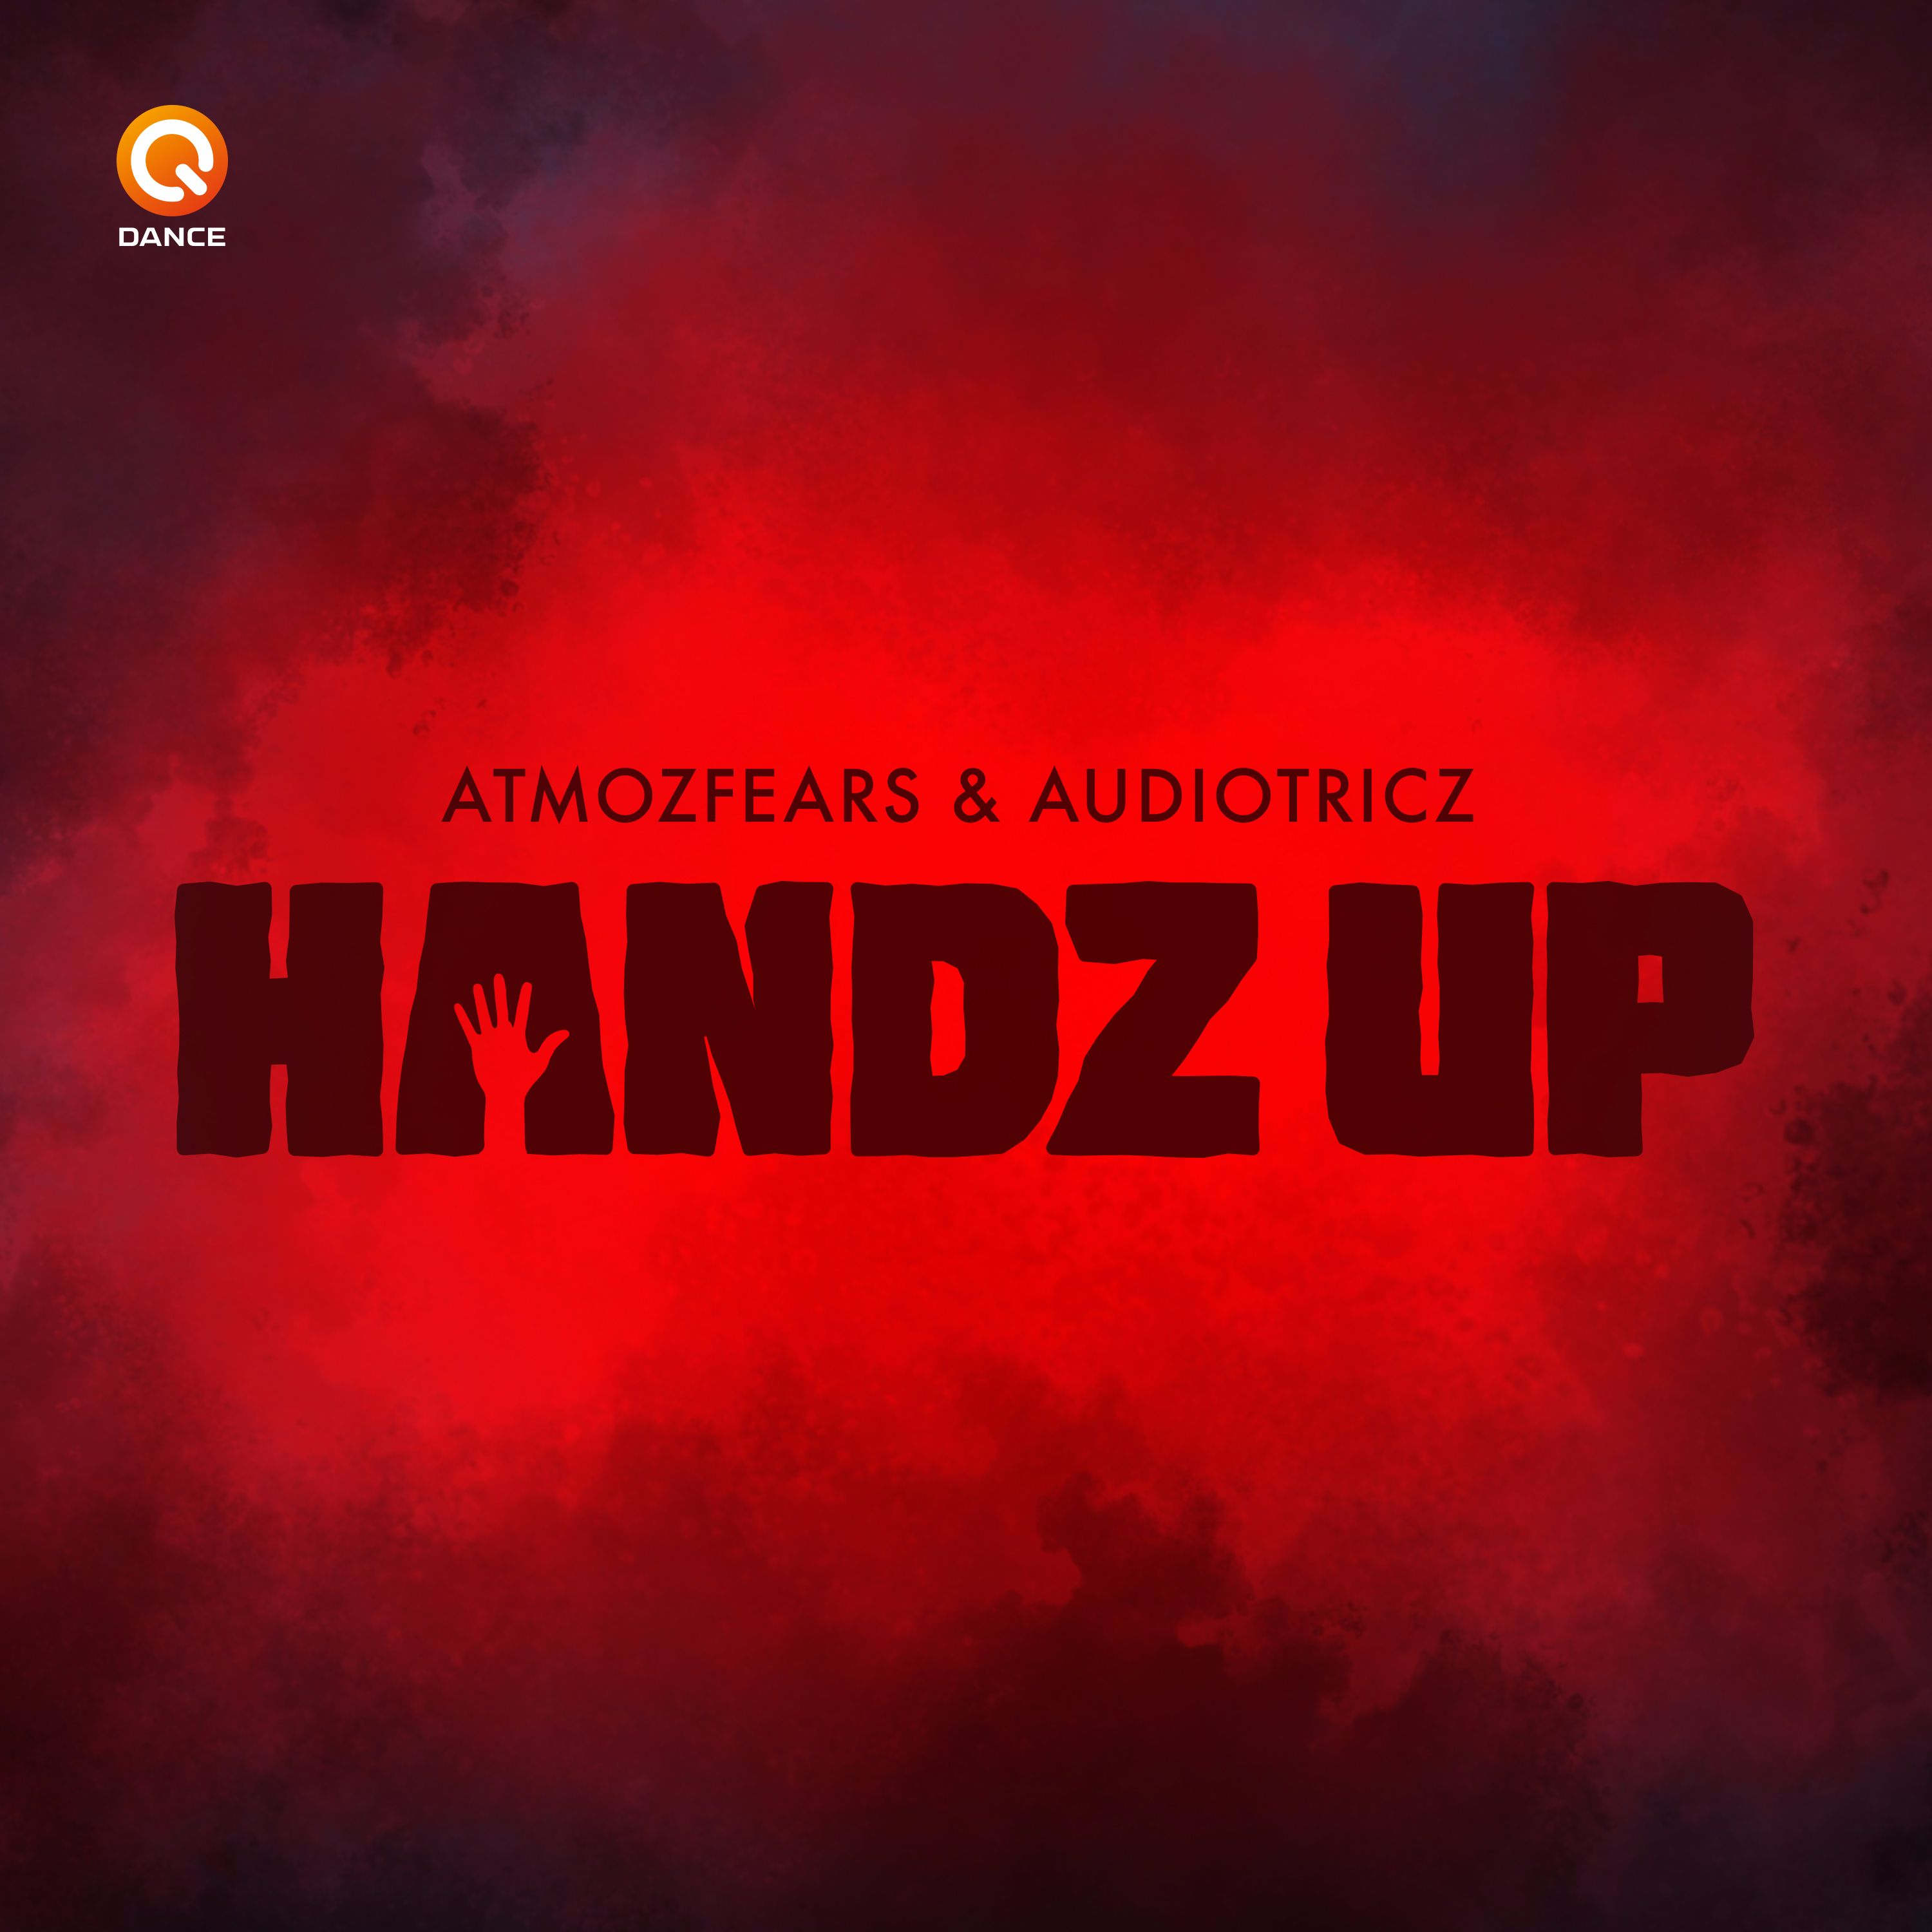 Atmozfears & Audiotricz - Handz Up [Q-DANCE RECORDS] Q150